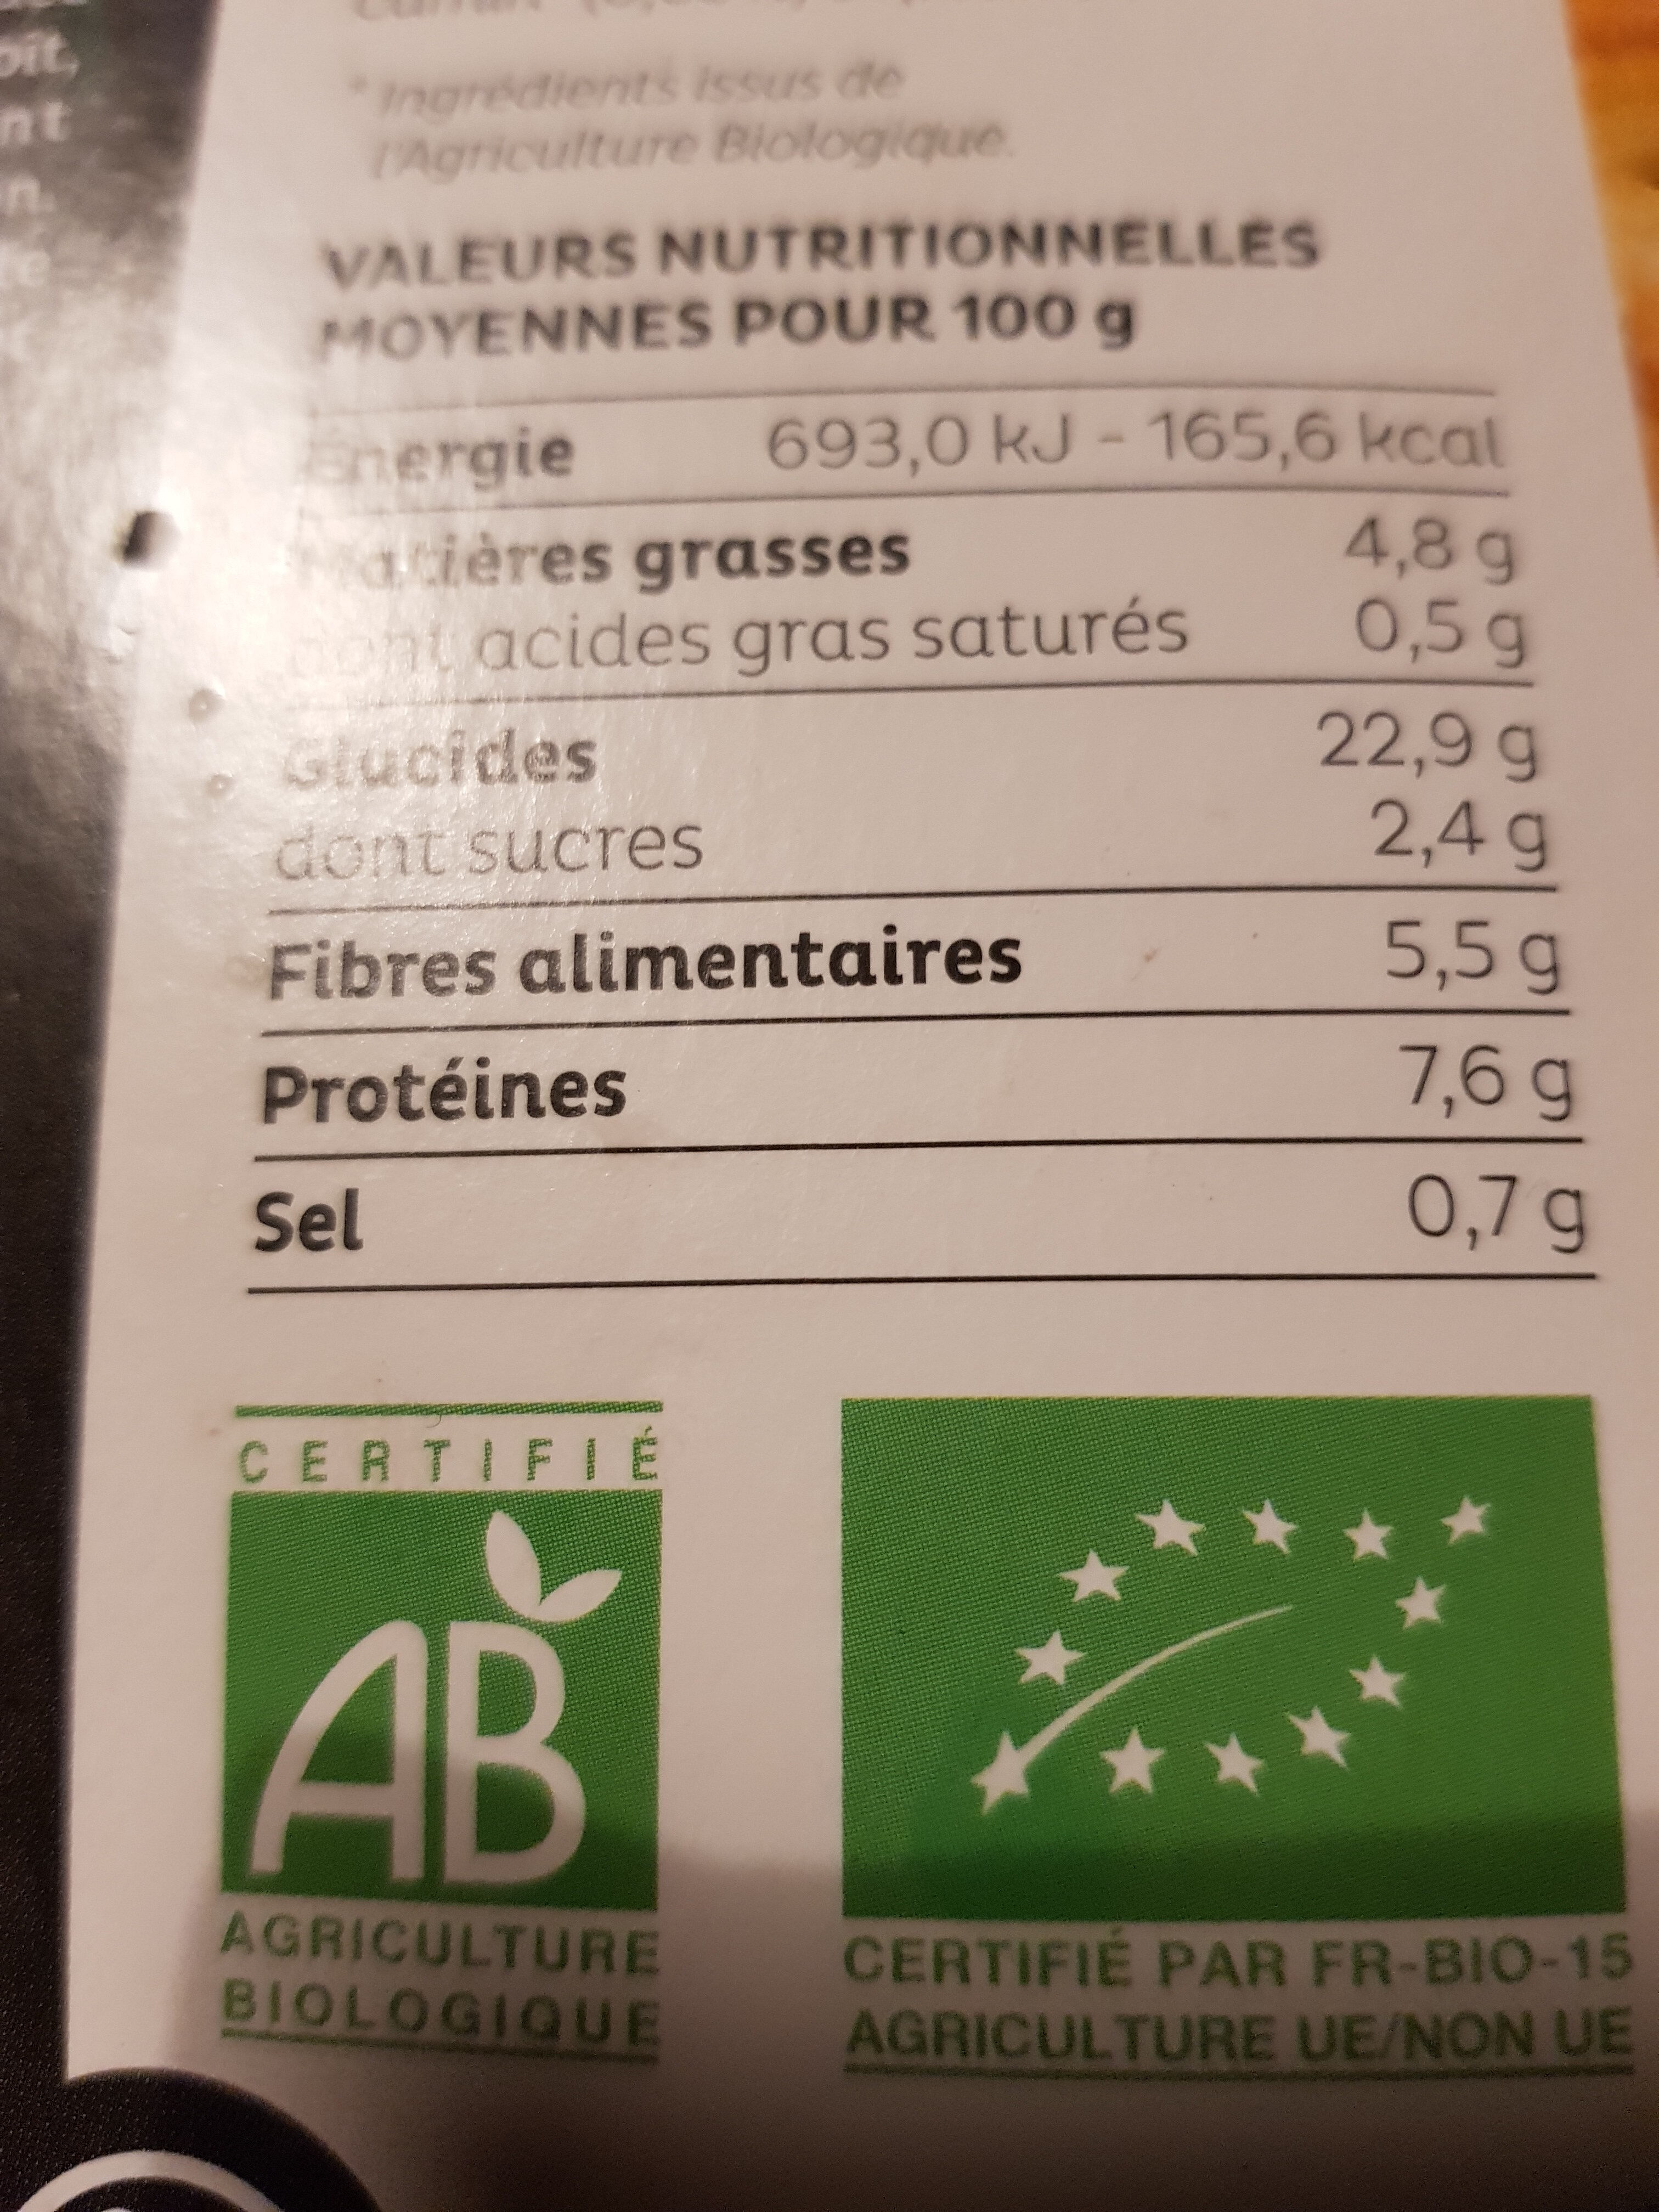 Galettes pois chiches - Informations nutritionnelles - fr